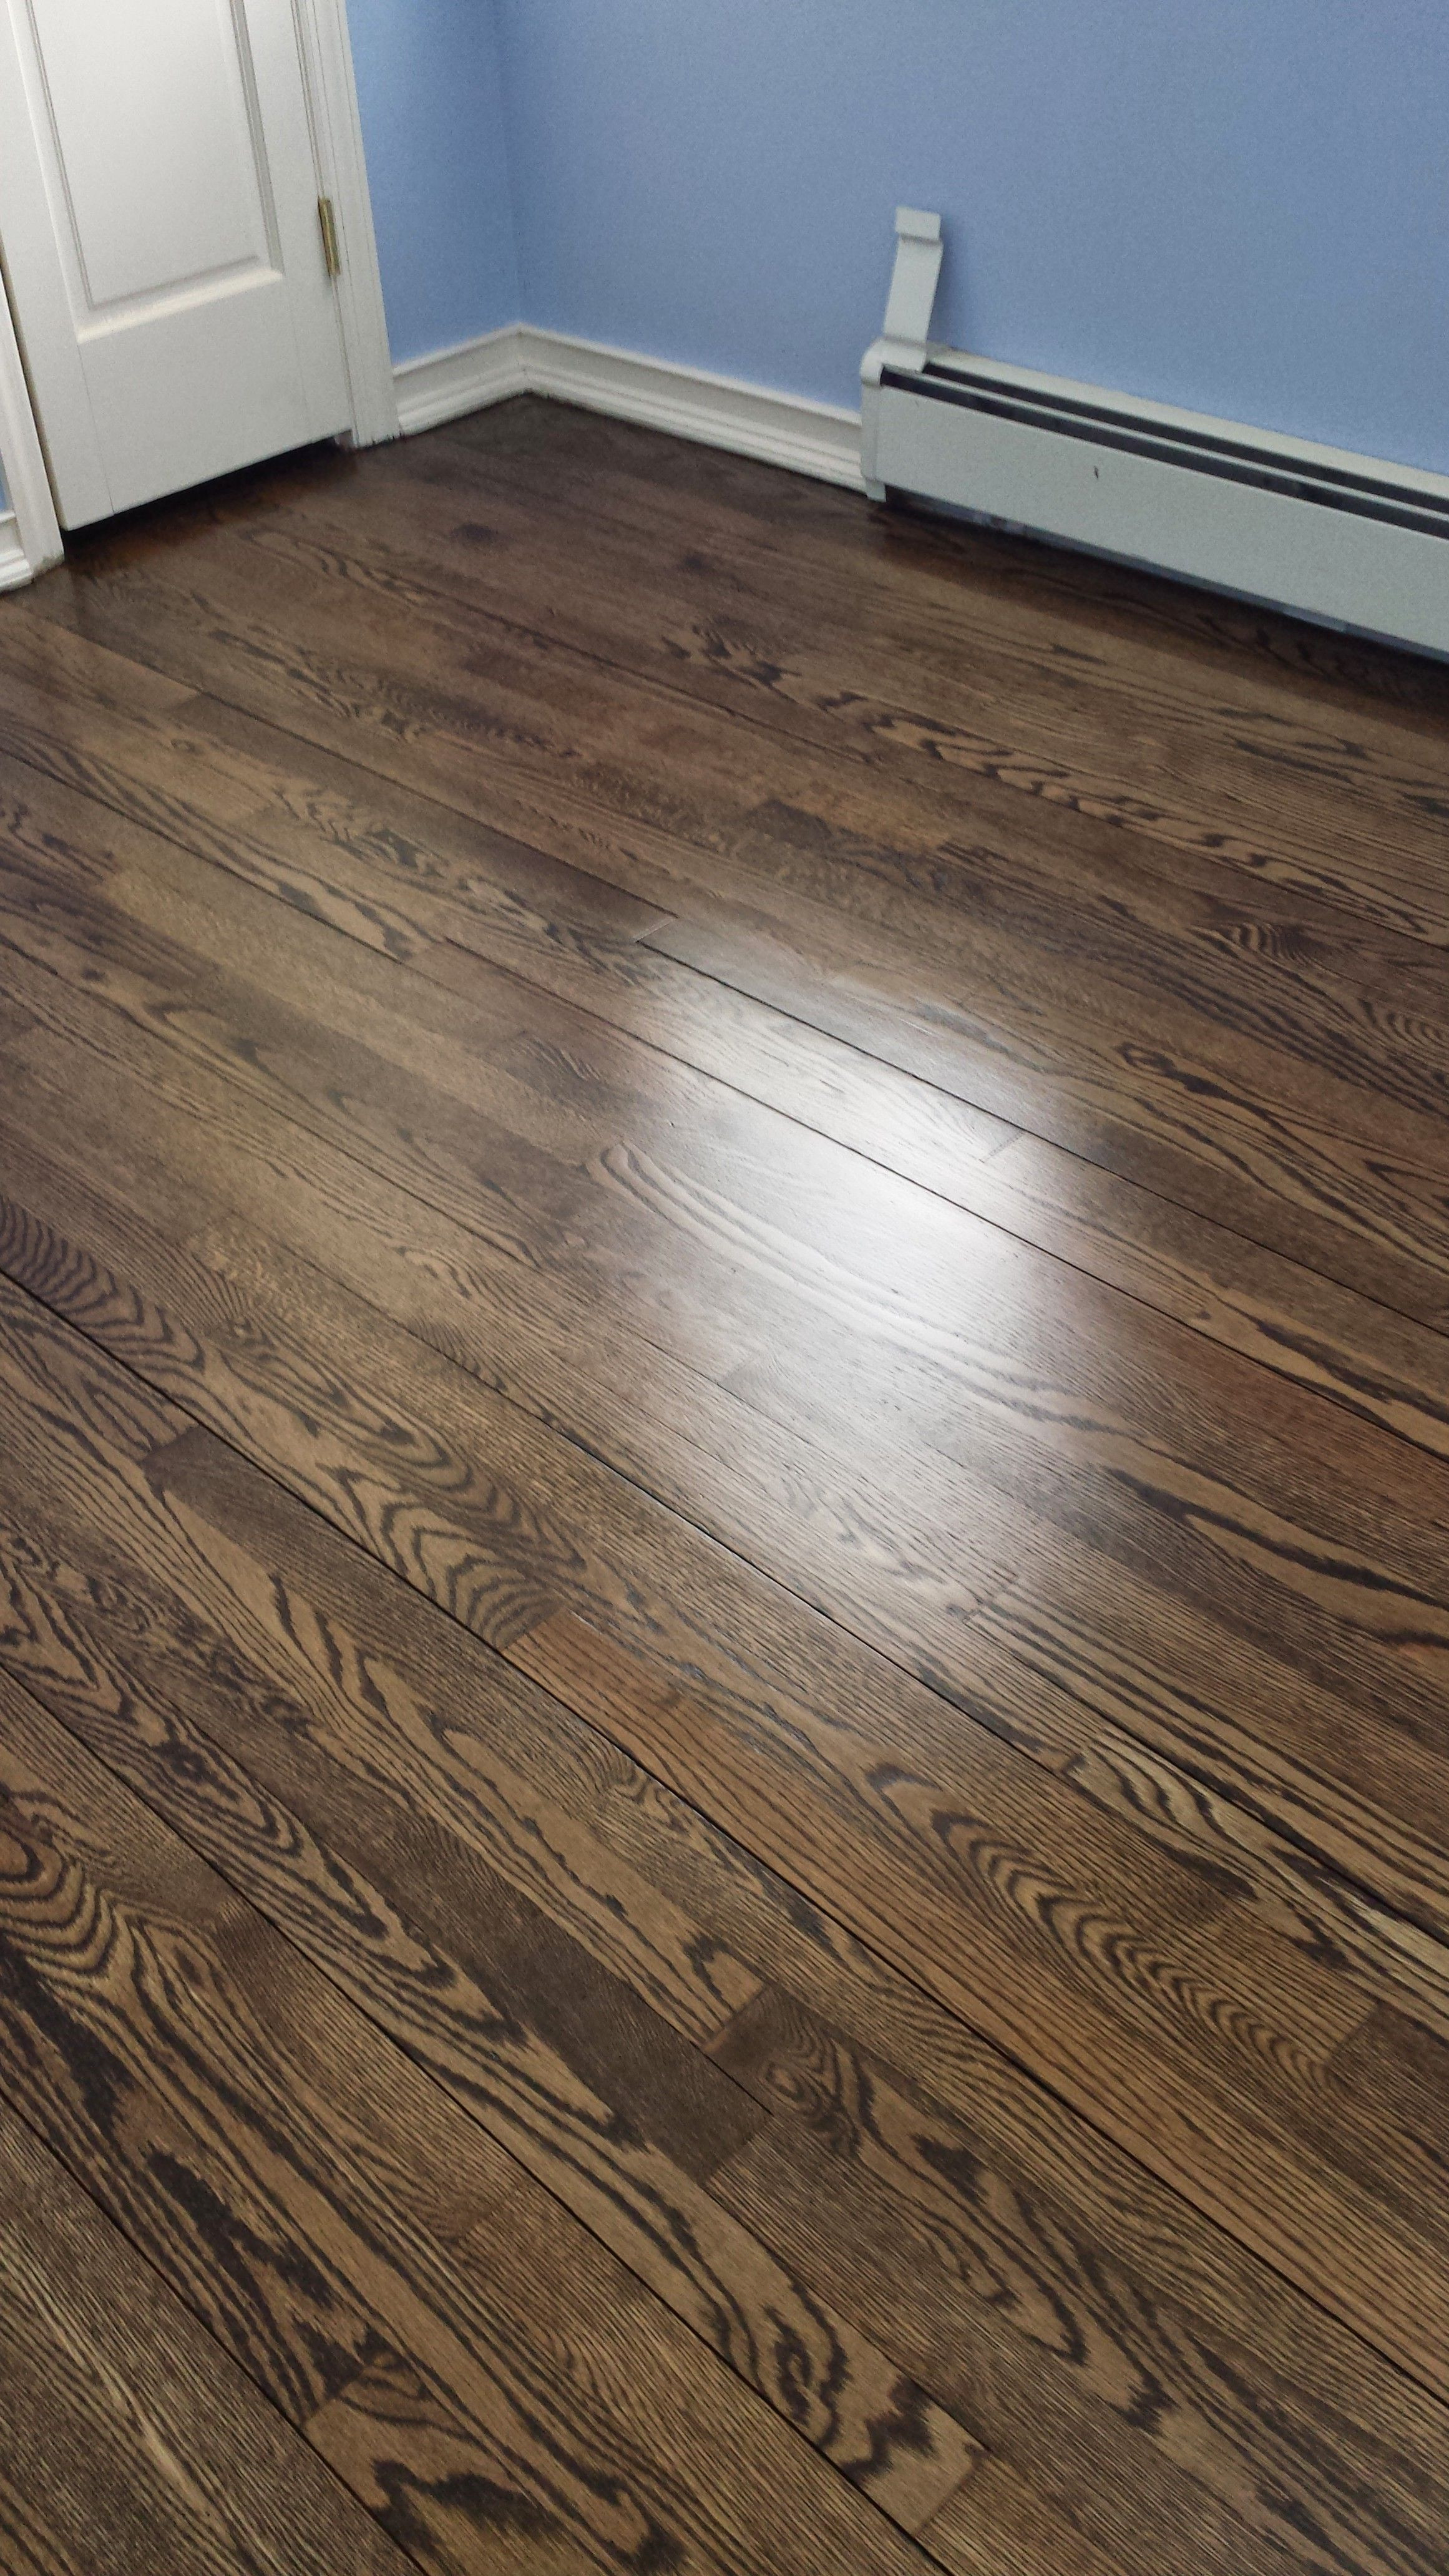 how to refinish hardwood floors yourself of how to install wood floors floor transition laminate to herringbone regarding how to install wood floors great methods to use for refinishing hardwood floors